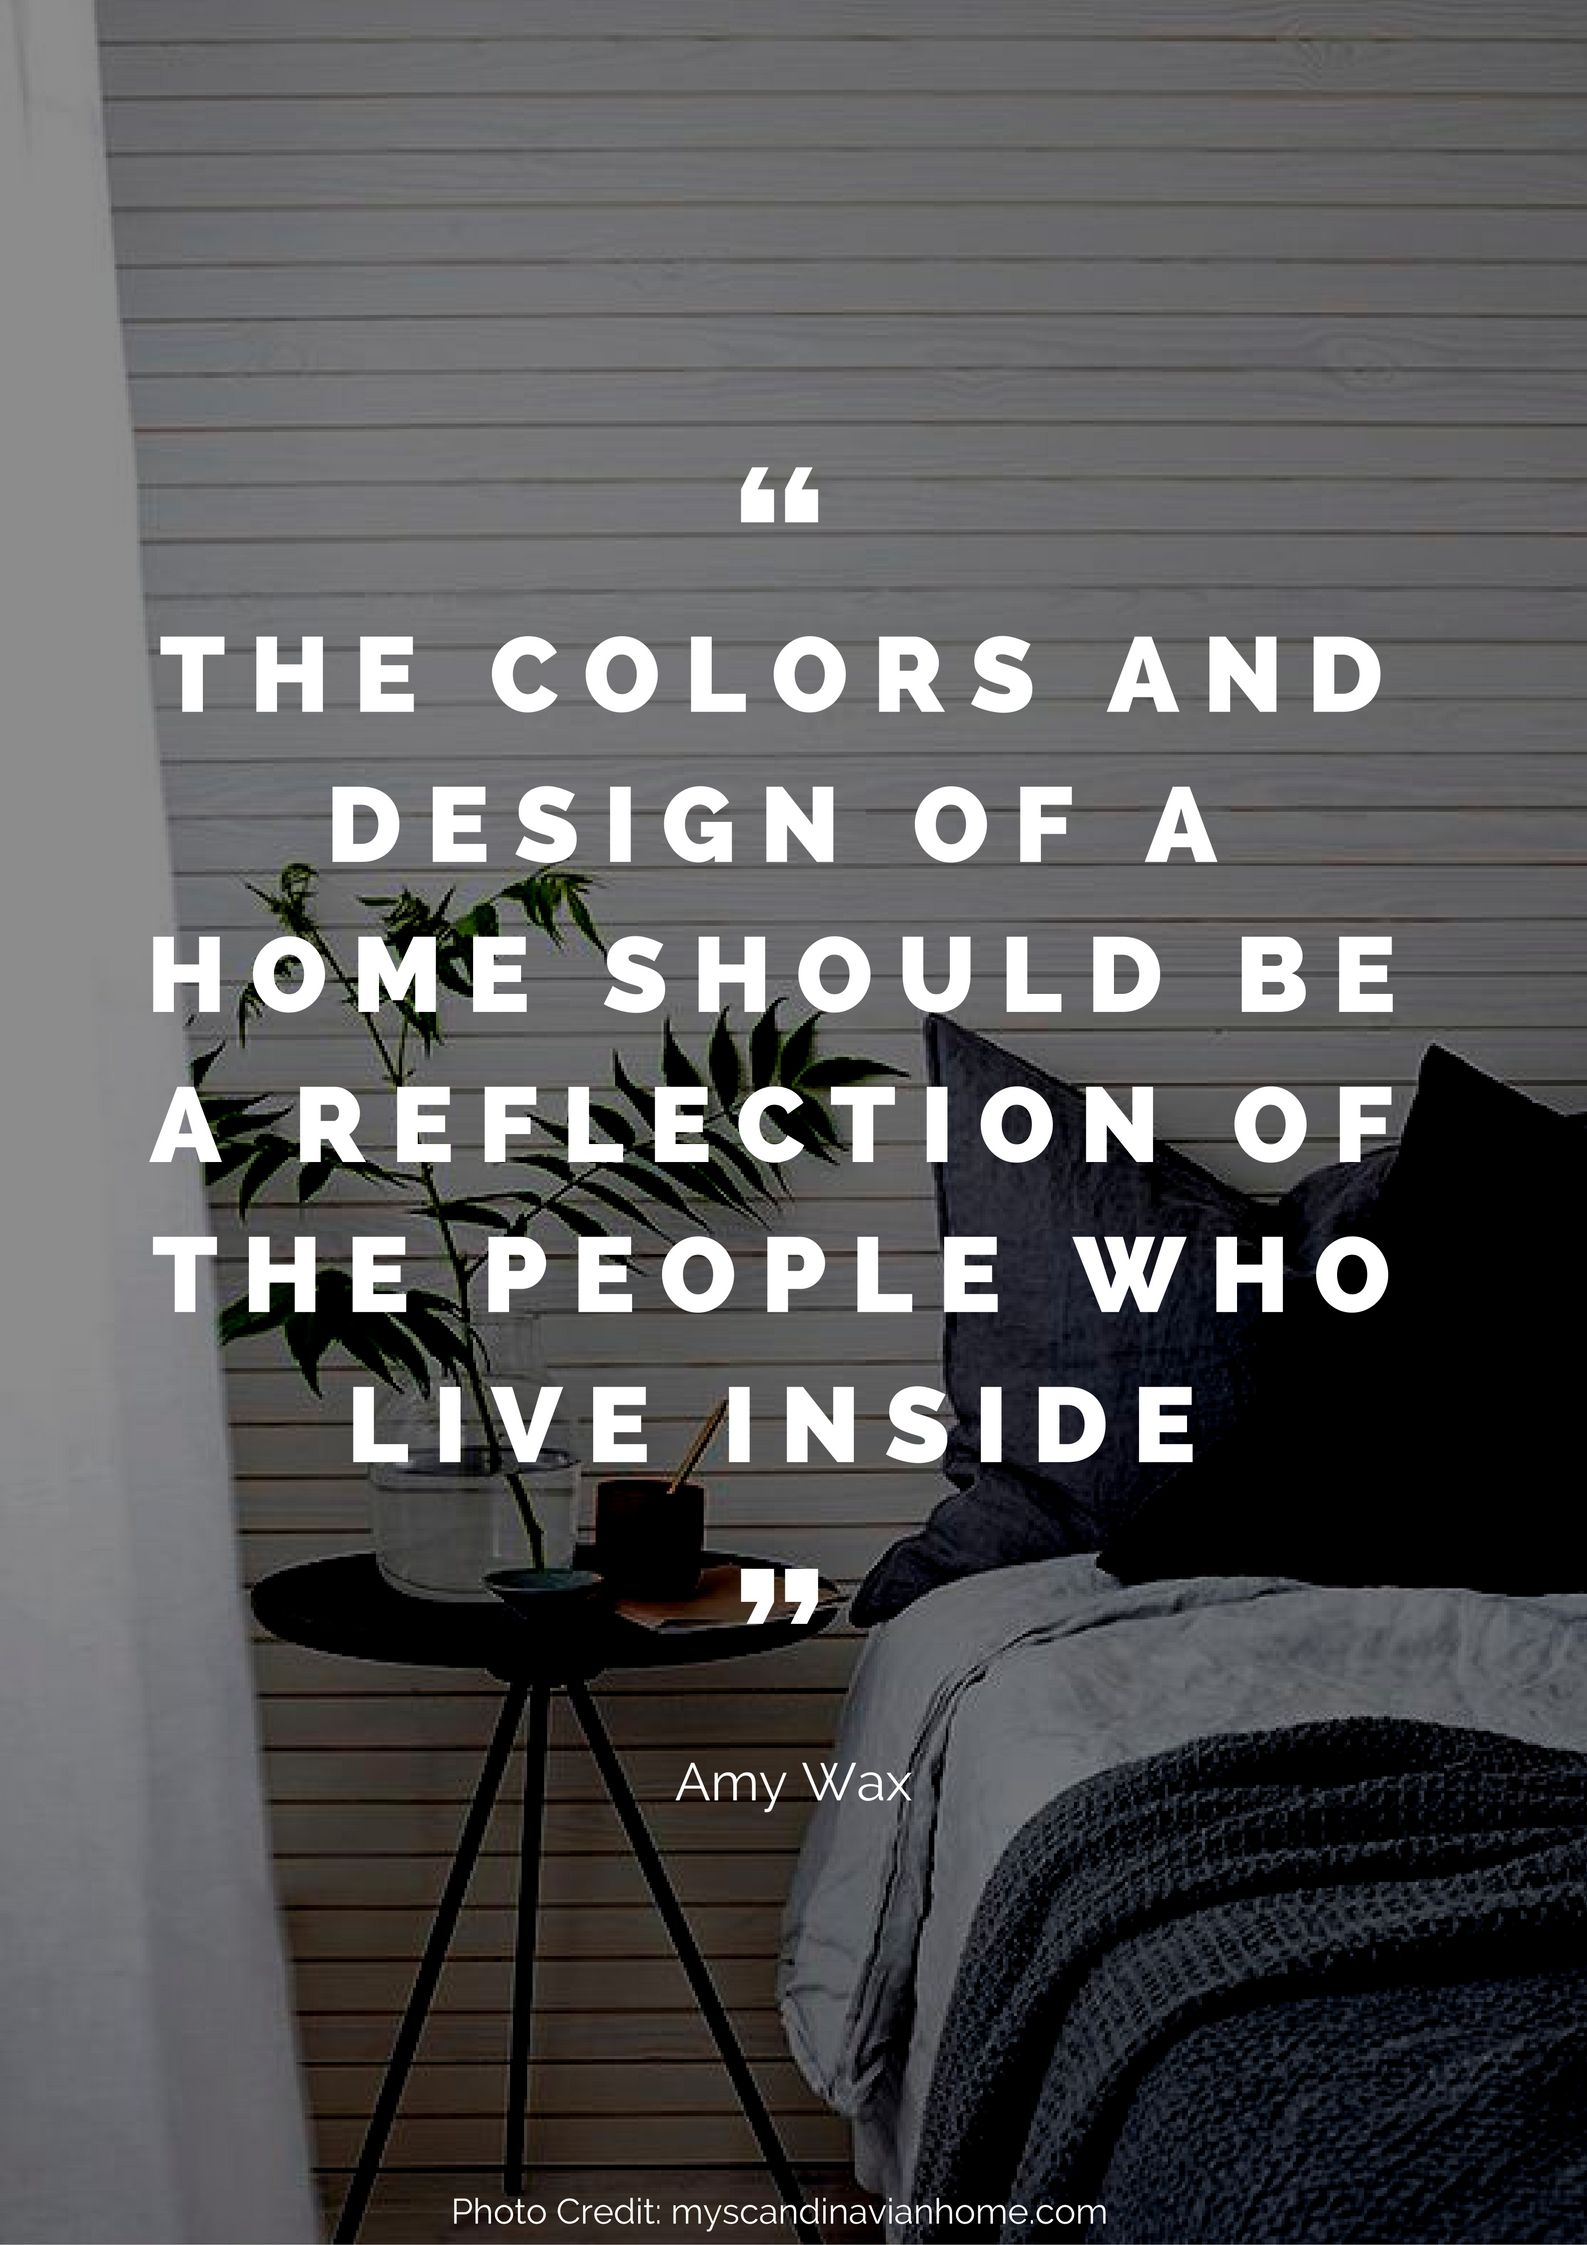 36 beautiful quotes about home | zuhause, farben und beautiful, Innenarchitektur ideen